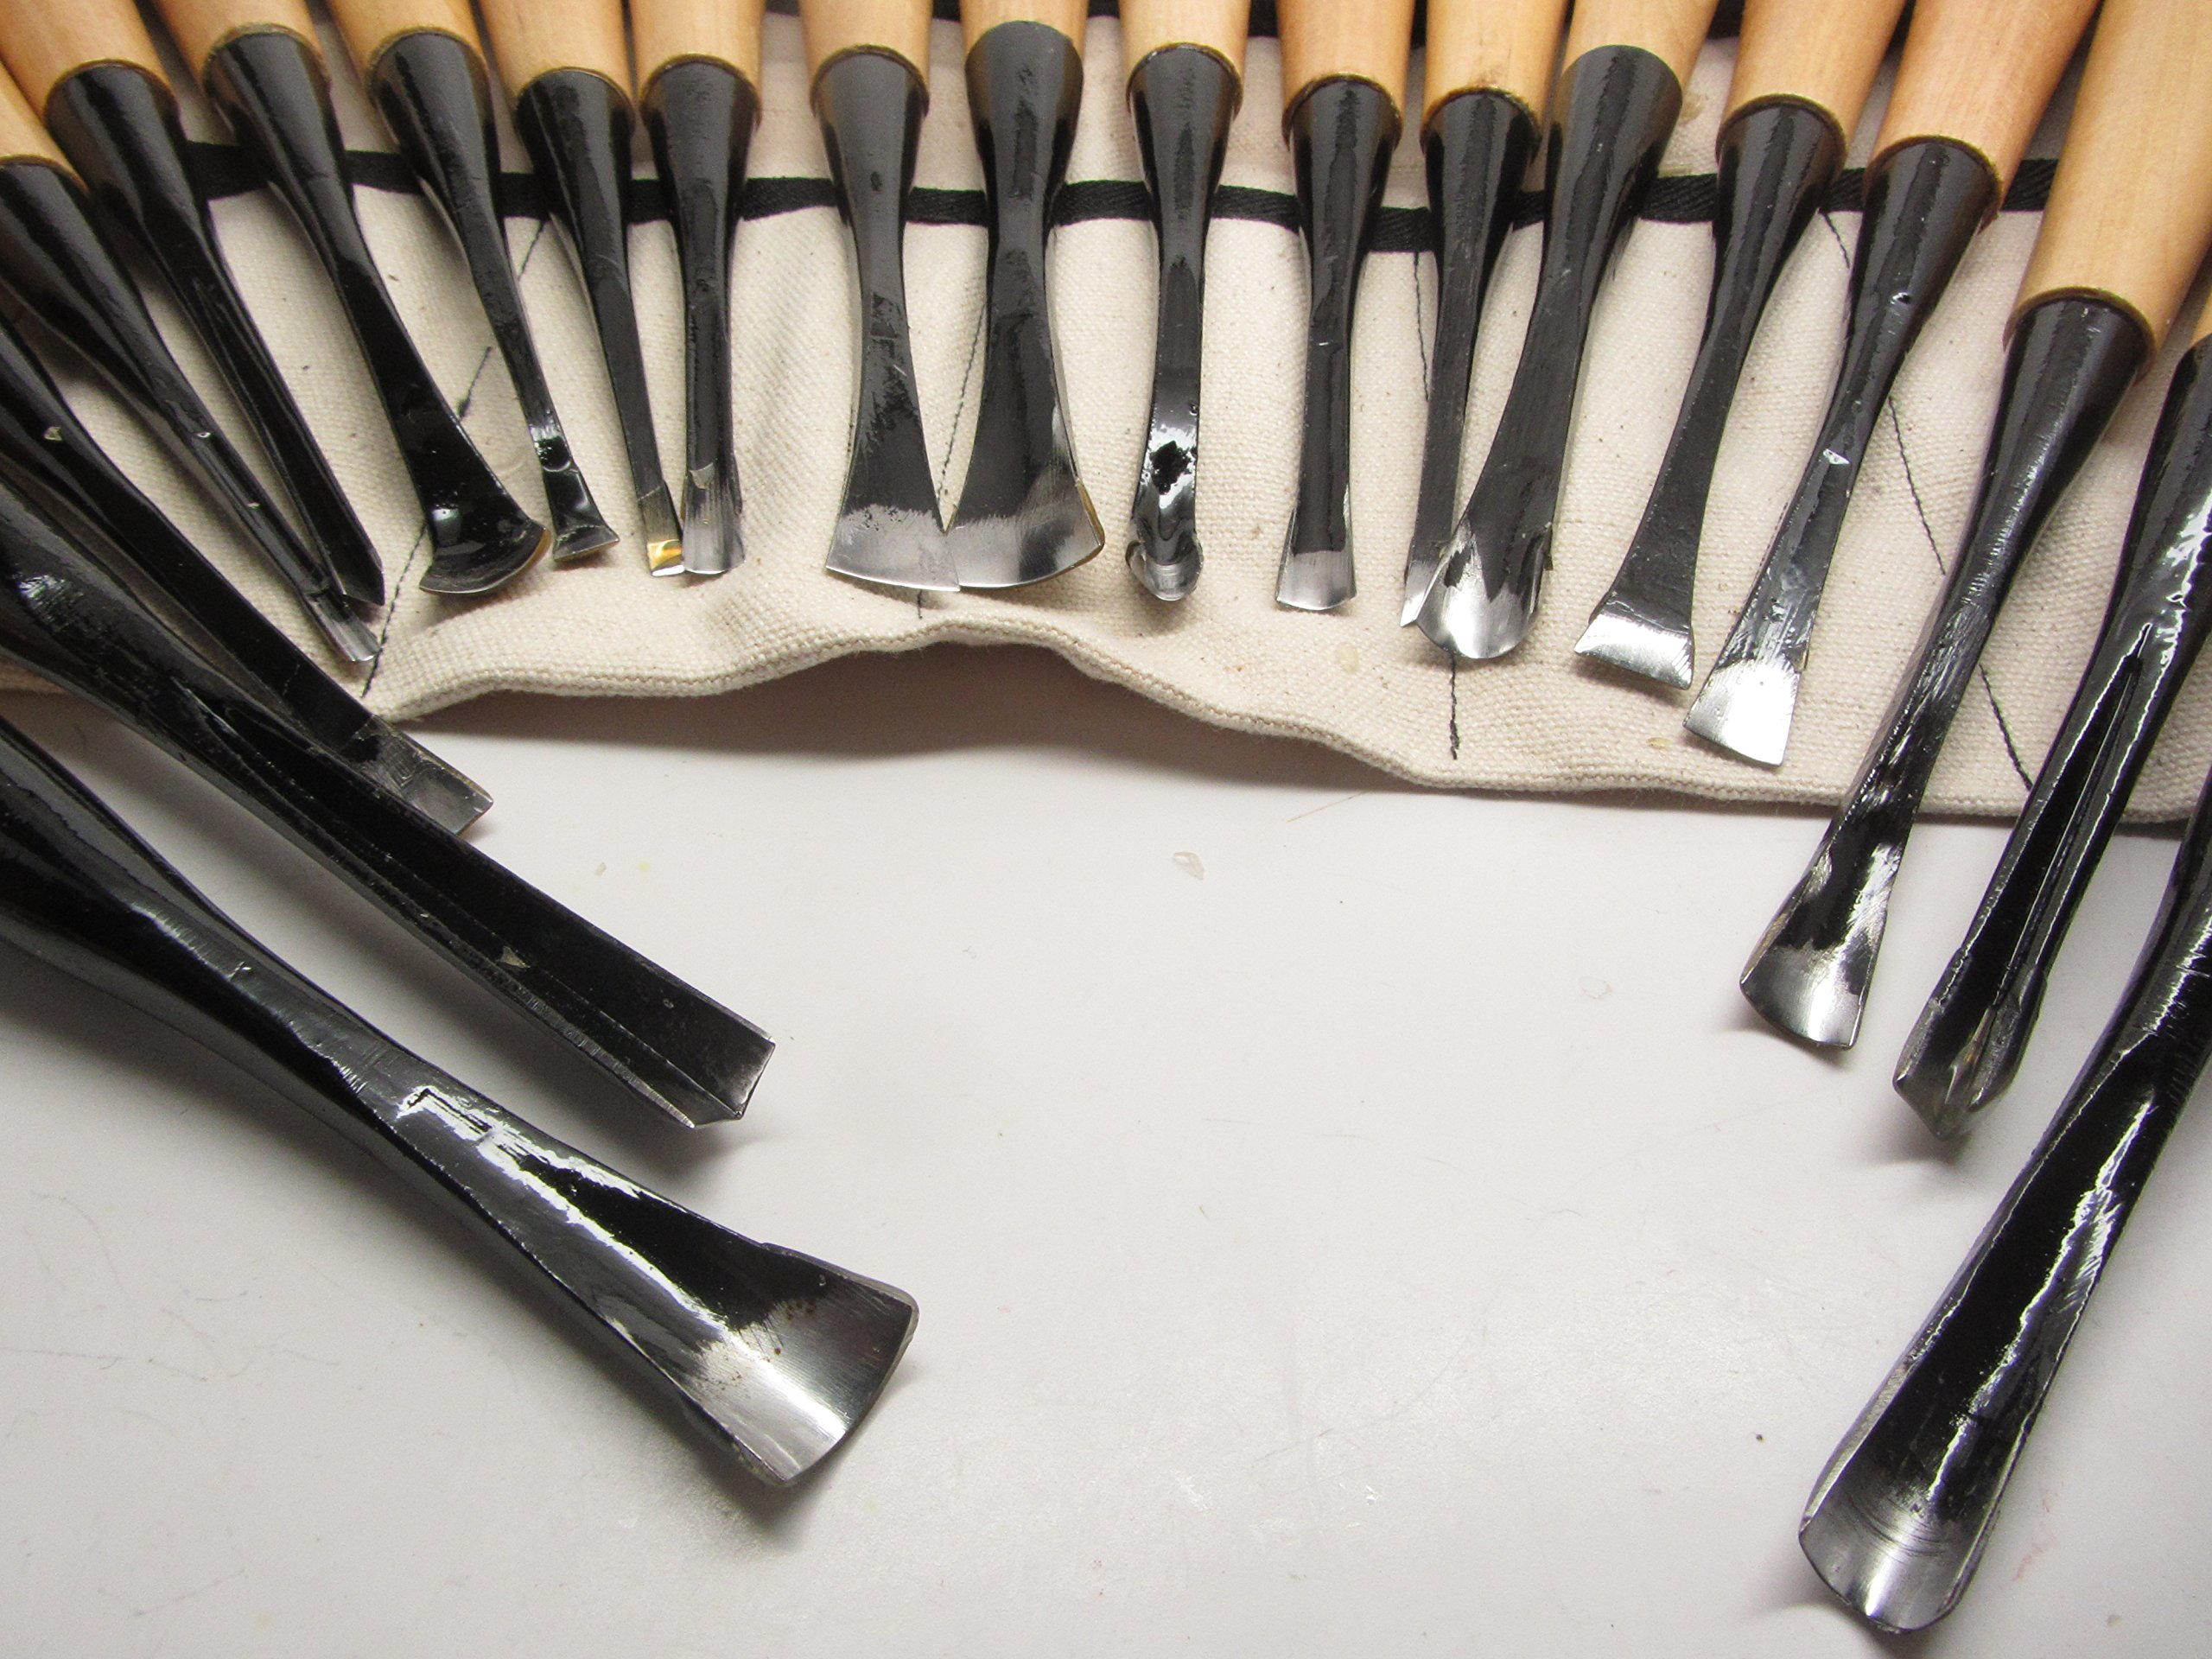 20pc Mastercarver Detail Wood Carving Tools Set w/Canvas Roll 401005